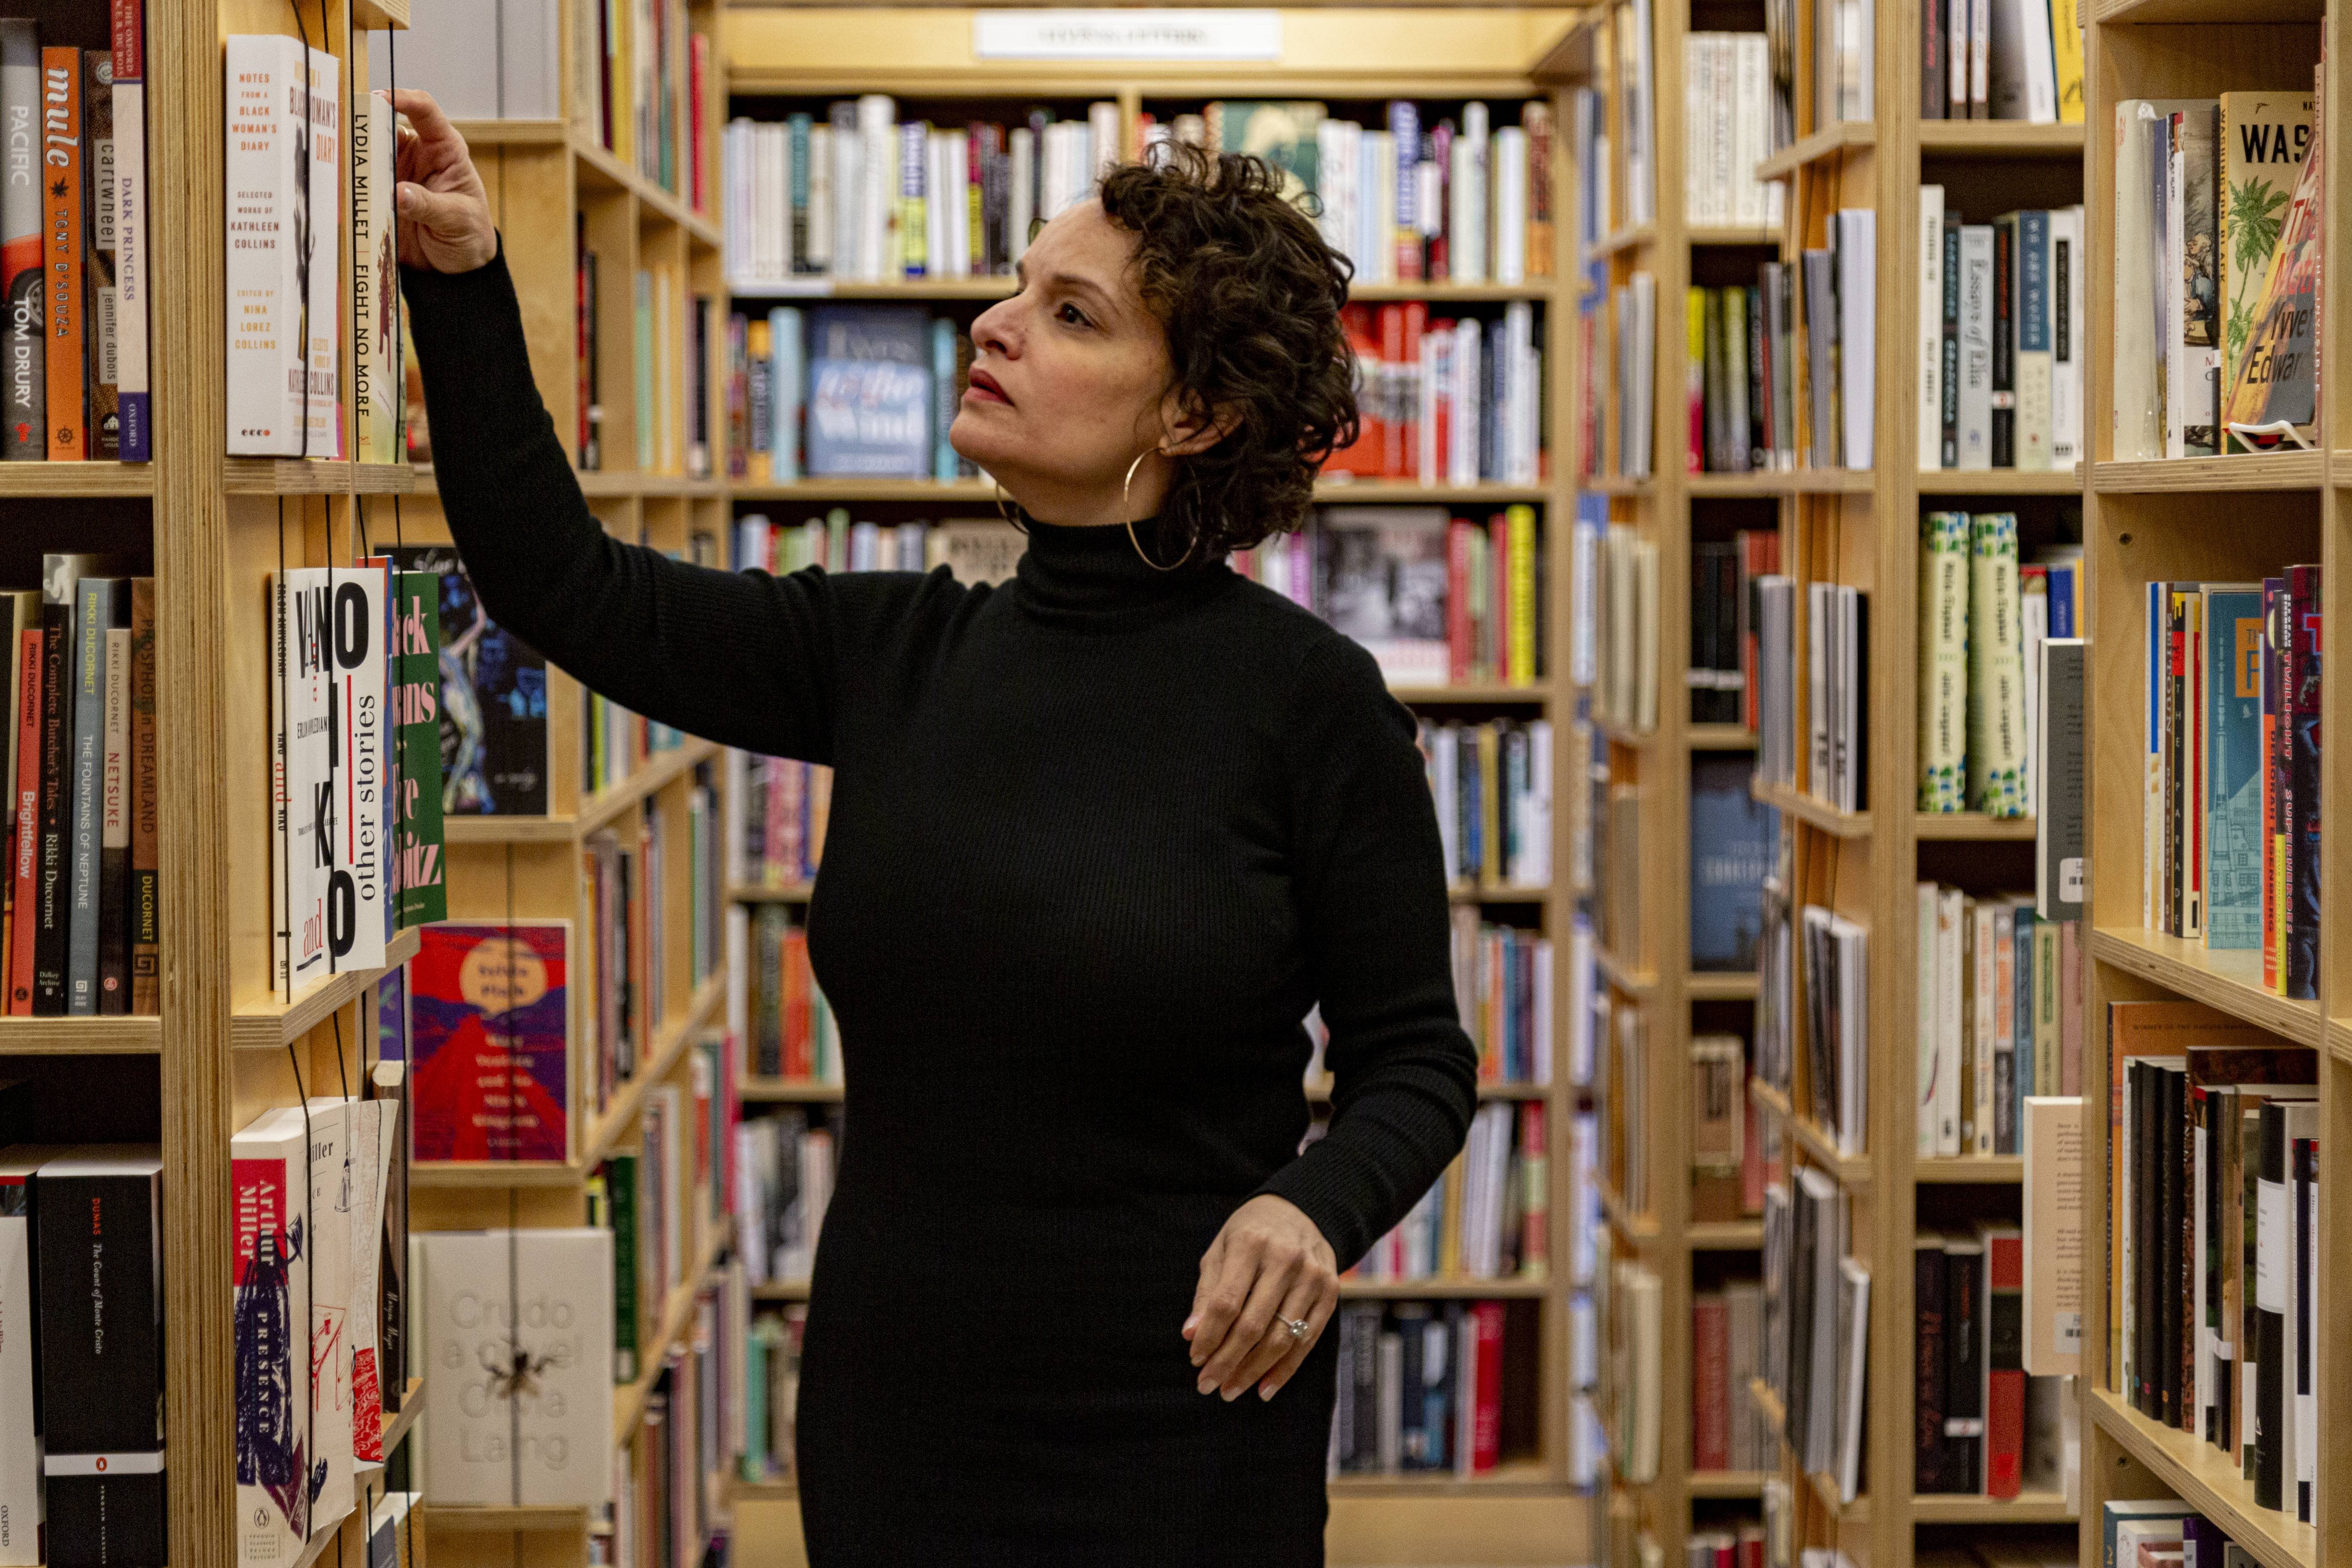 Image: Mustafah stands inside a bookstore, reaching up to pull a book off a shelf. She wears a long-sleeved black turtleneck dress and large hoop earrings. Bookshelves full of books fill the space behind and around her. Photo by Mark Blanchard.